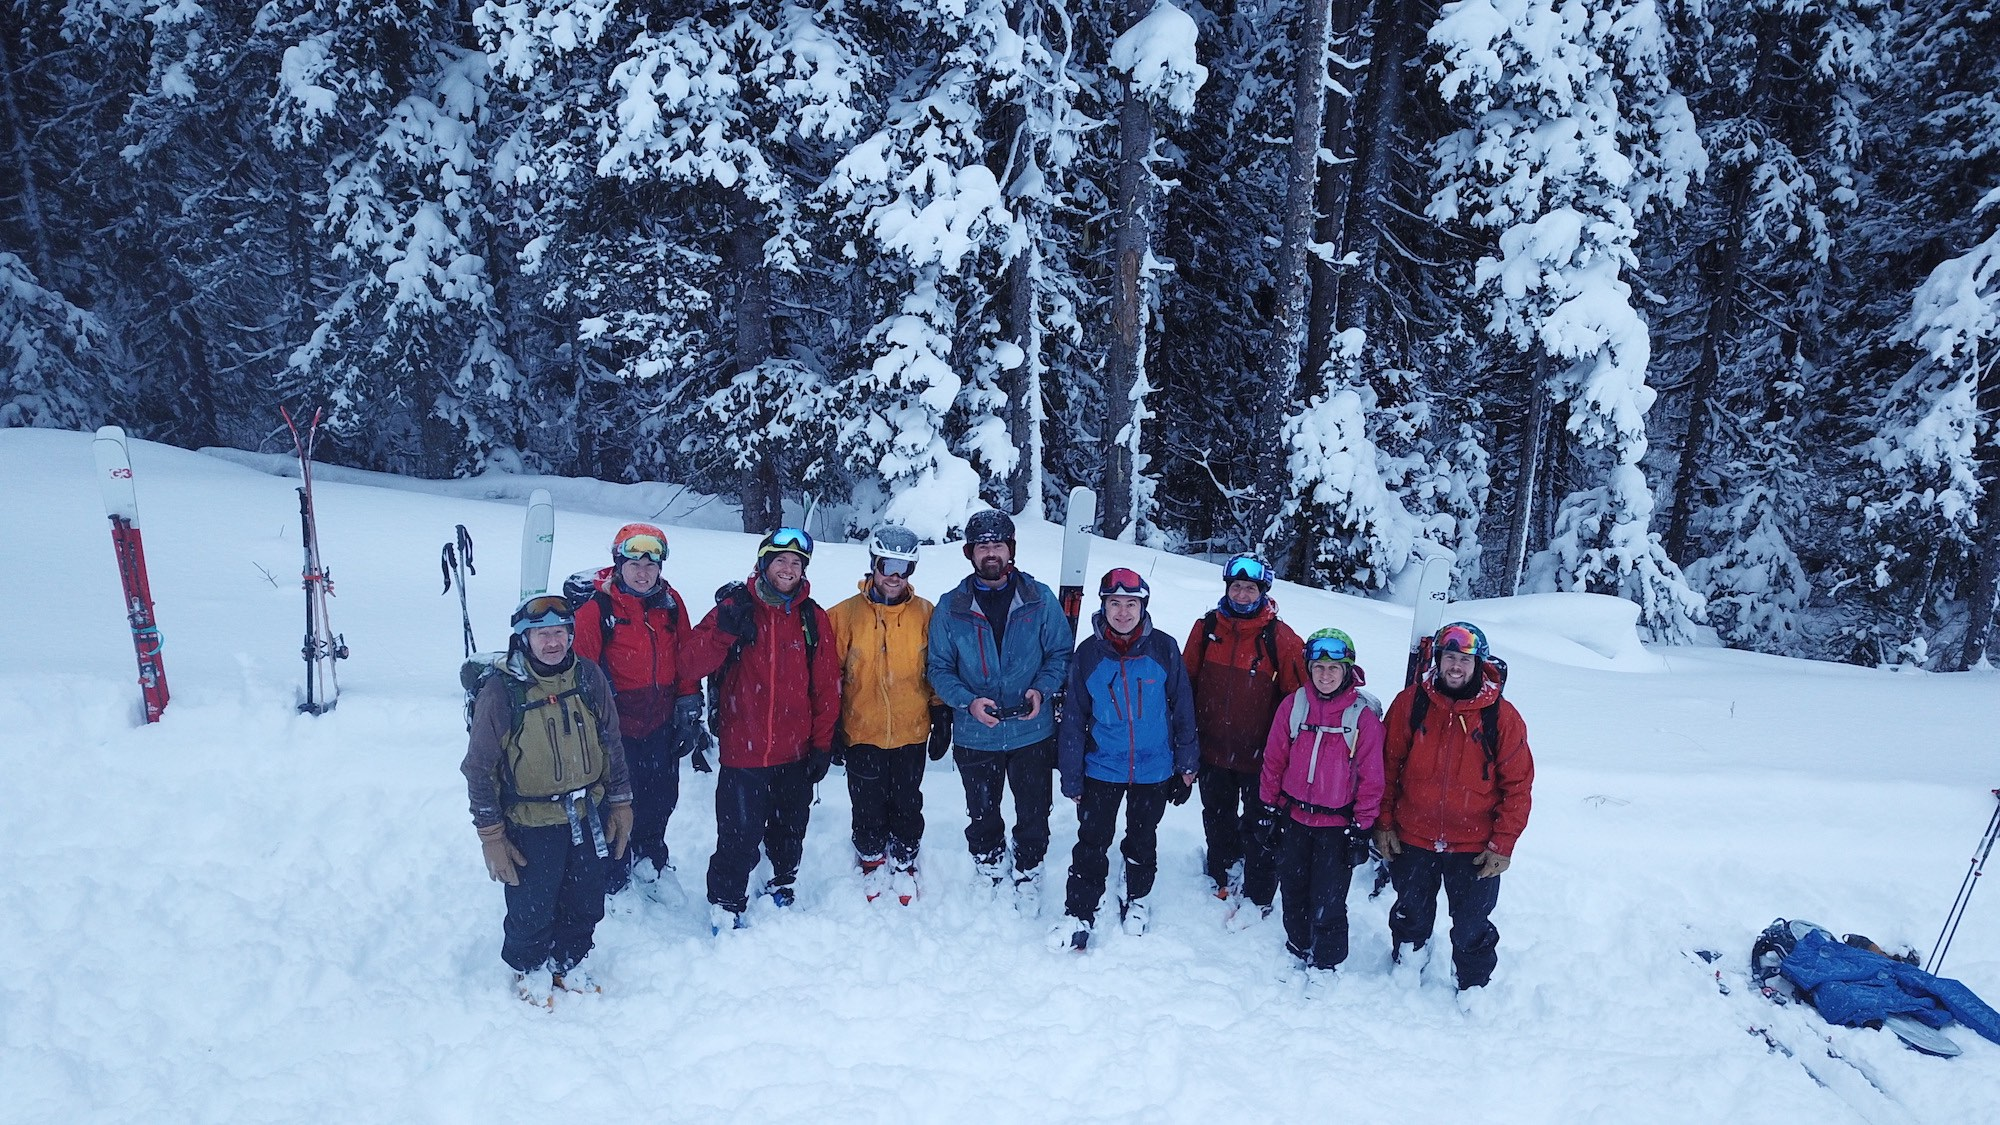 group-shot-cariboo-snowcat-skiing-lrg.